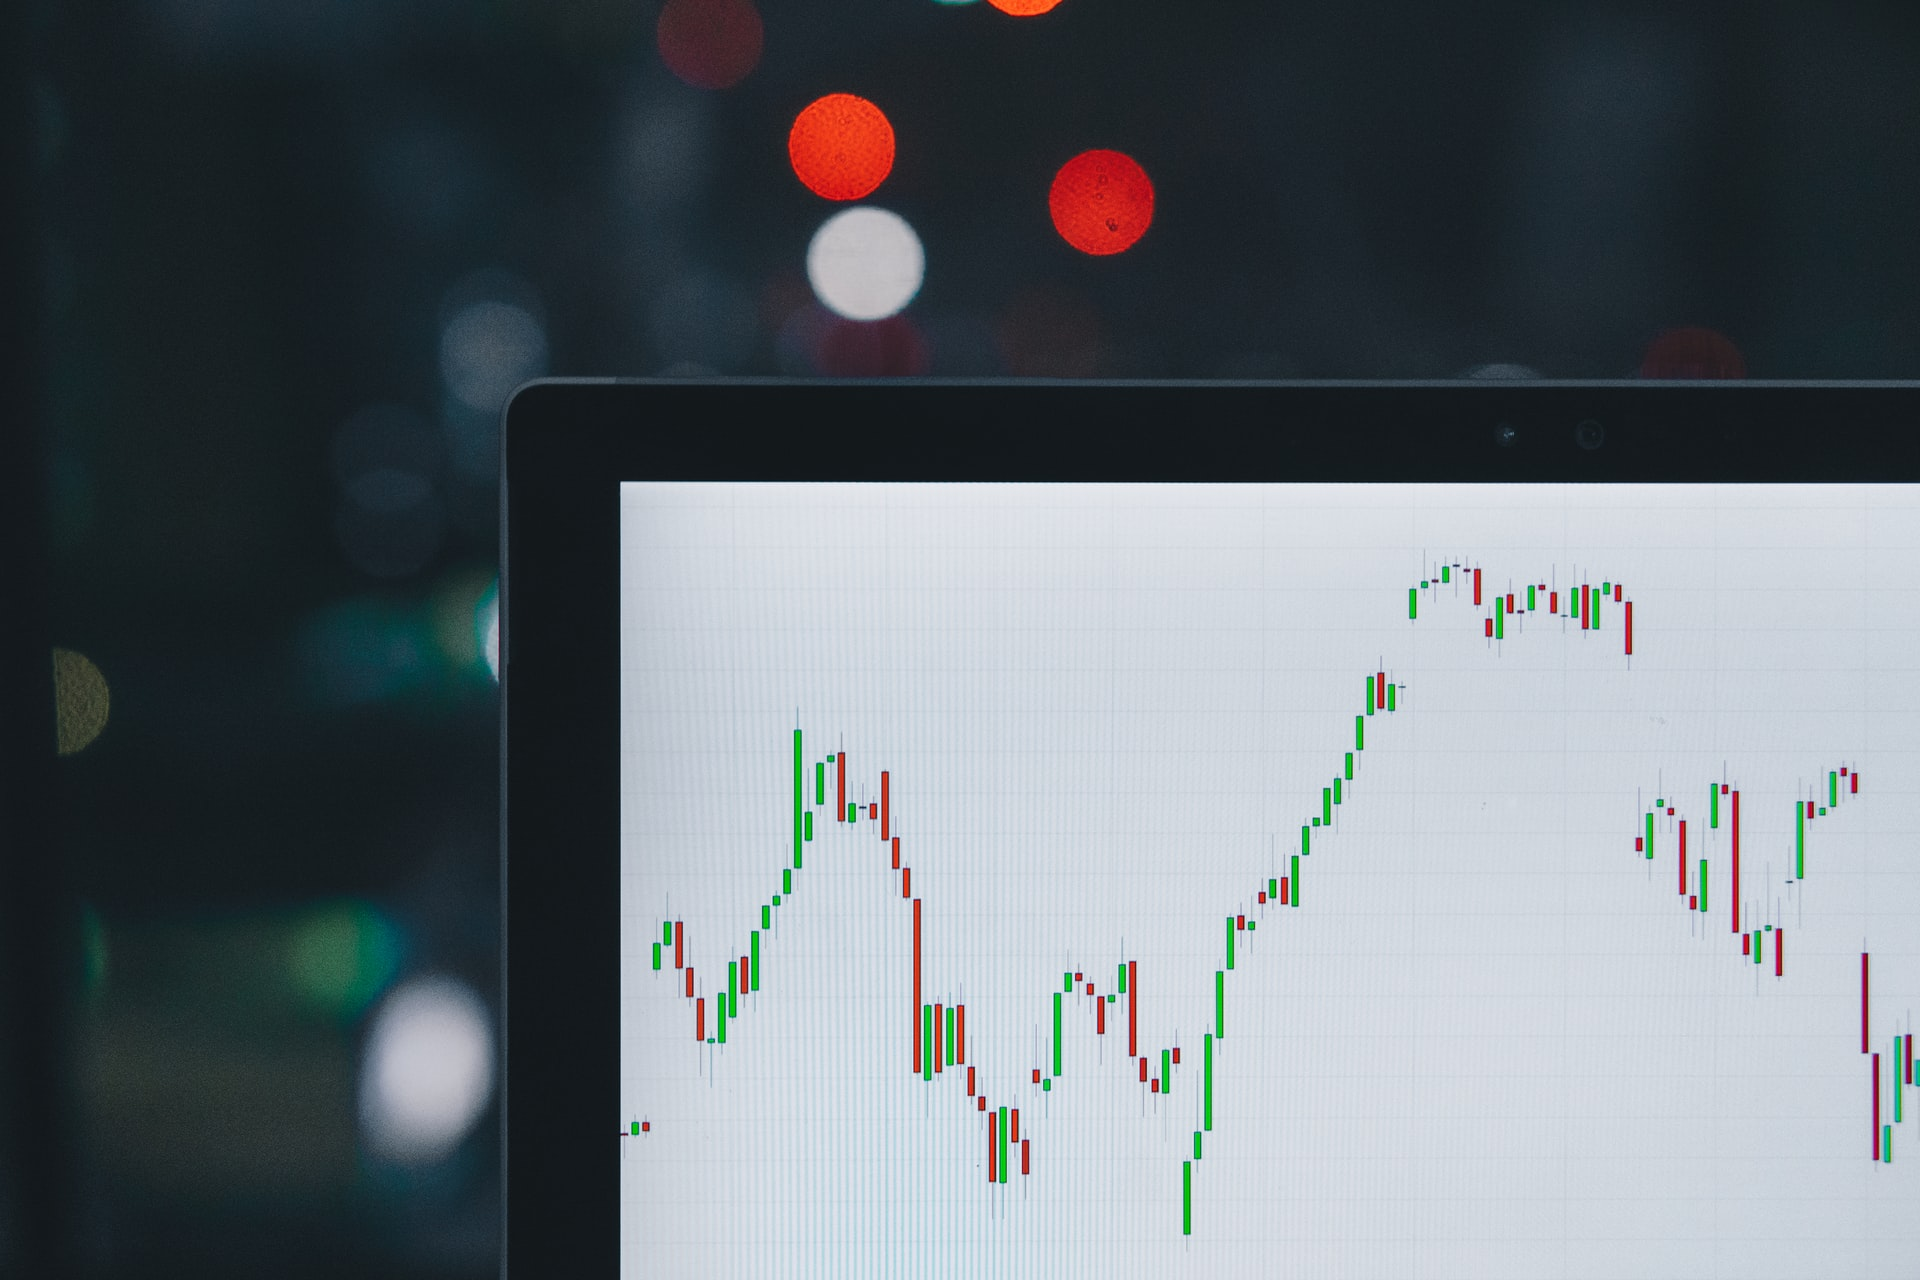 What Is Slippage? How To Avoid Slippage On DeFi Exchanges